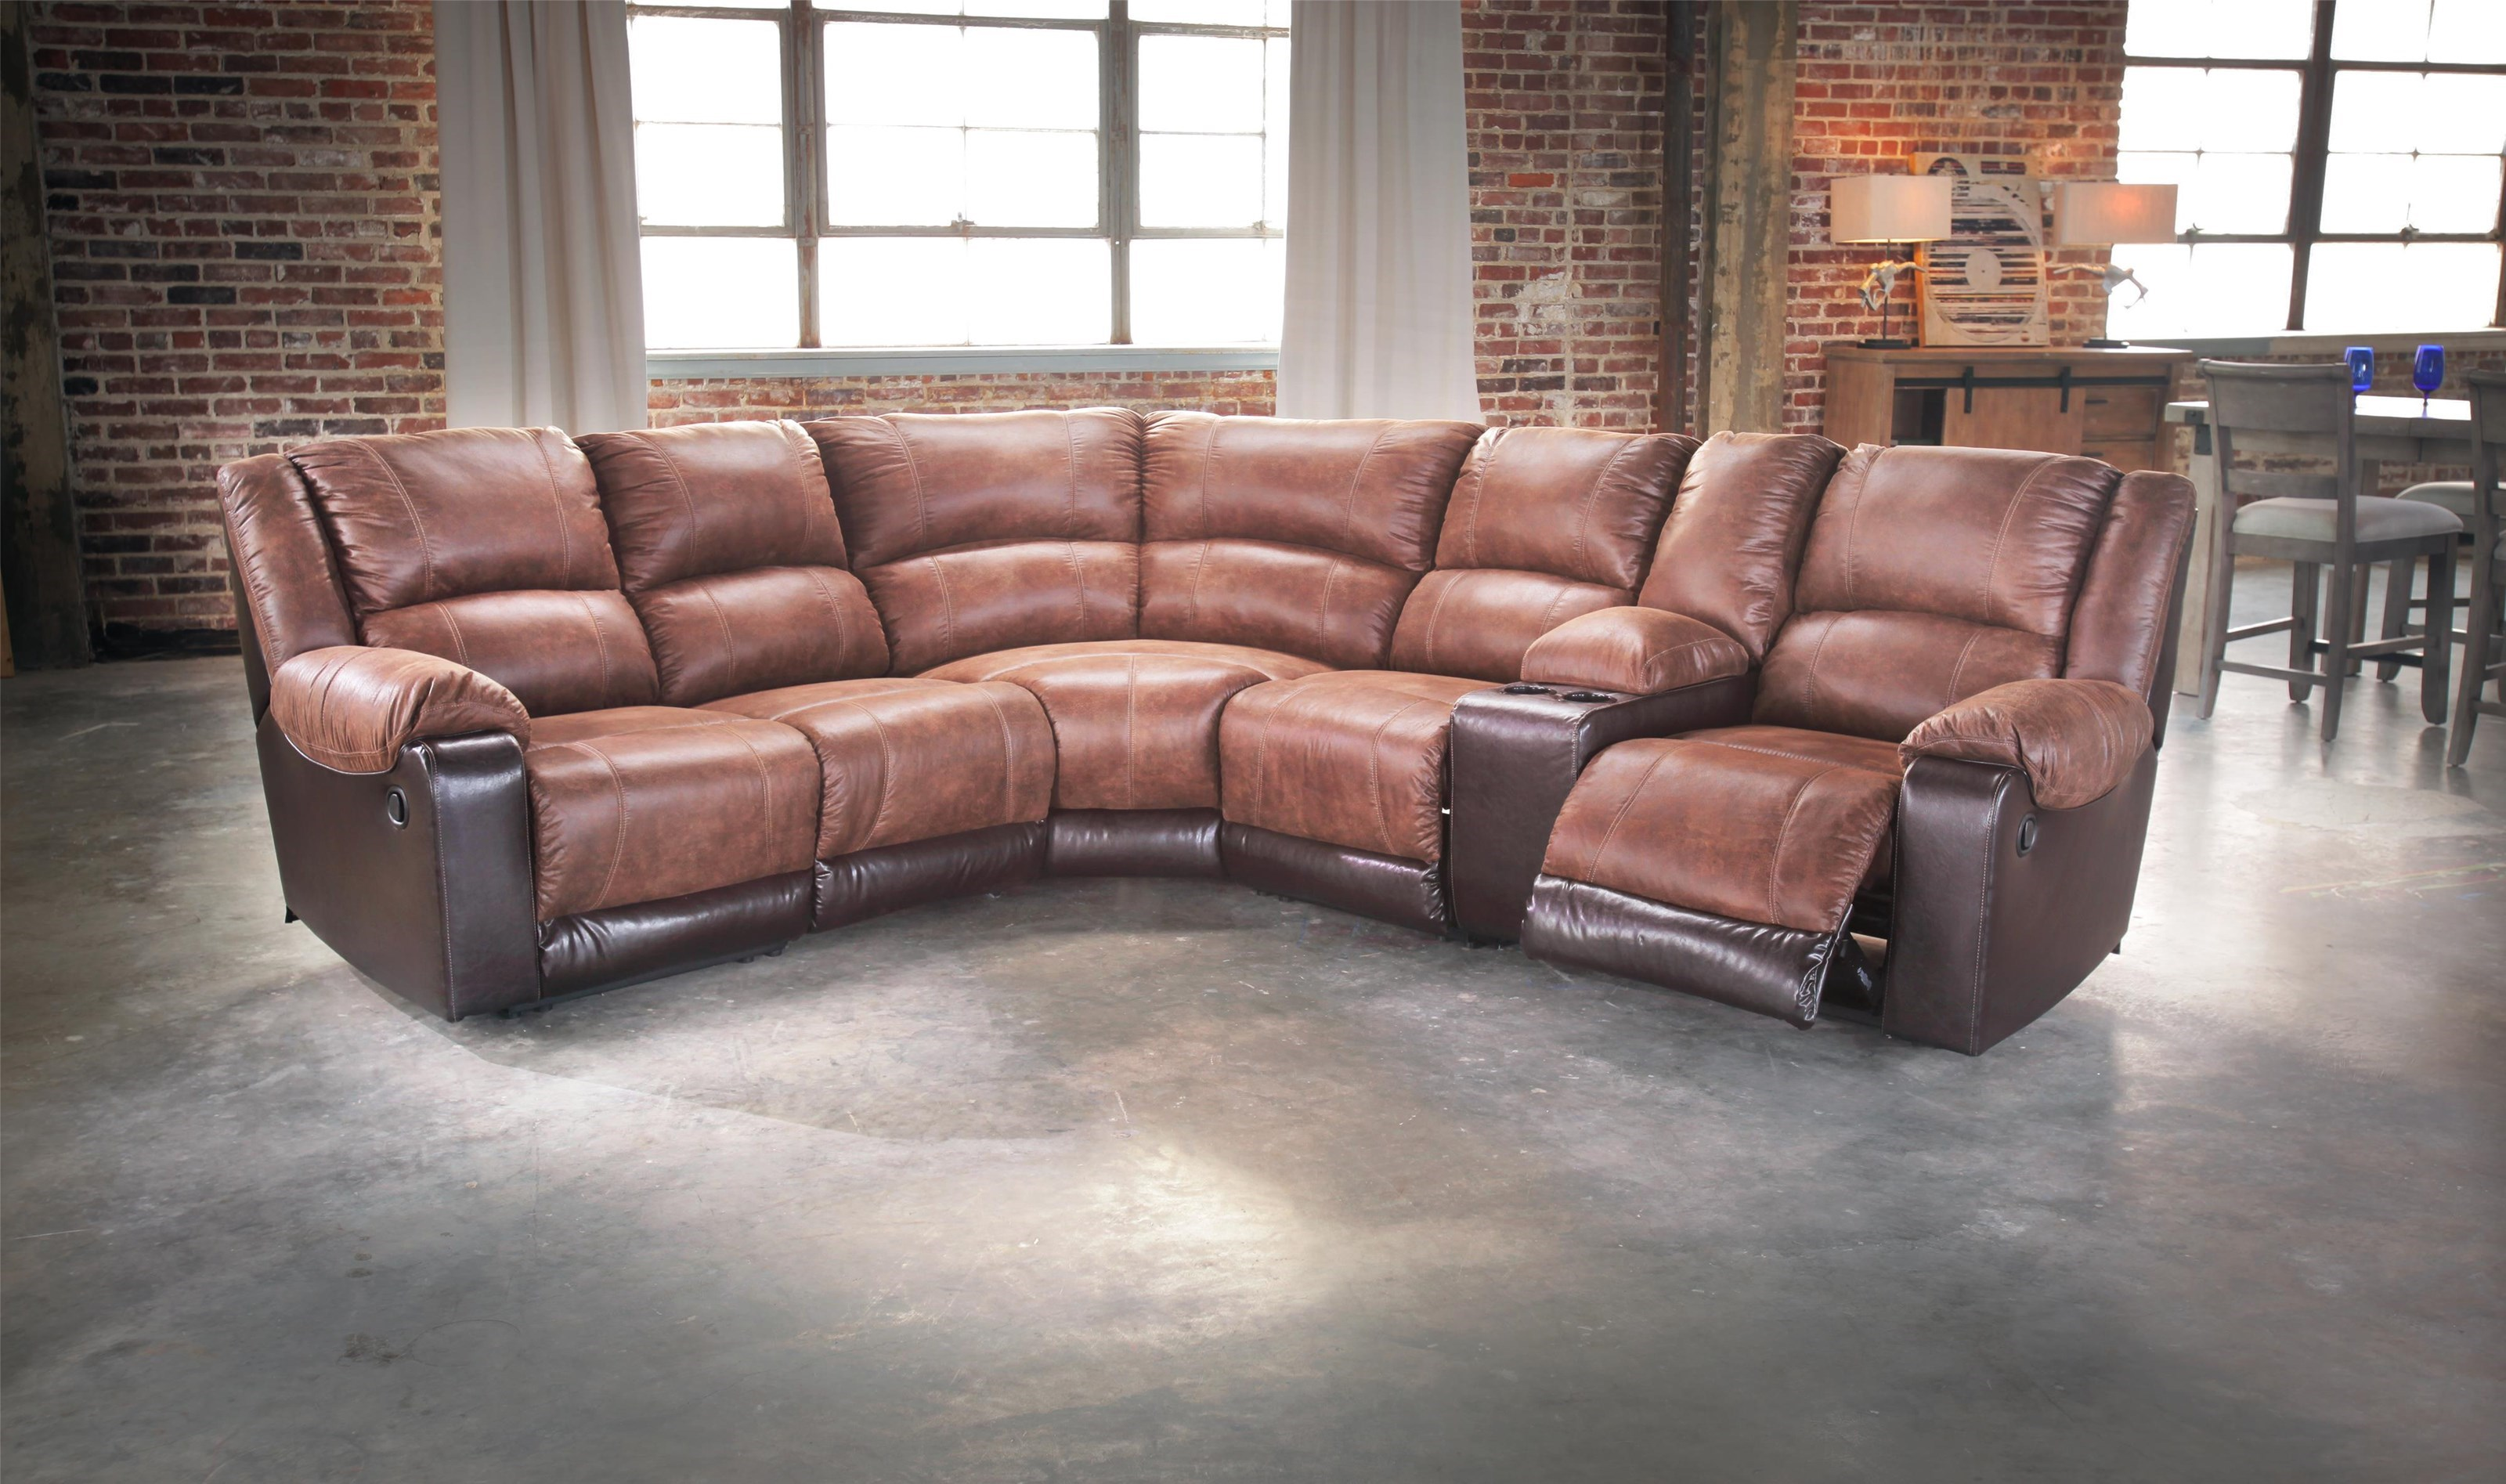 Signature Design by Ashley Nantahala Faux Leather Reclining Sectional with Console \u0026 3 Recliners - Royal Furniture - Reclining Sectional Sofas  sc 1 st  Royal Furniture & Signature Design by Ashley Nantahala Faux Leather Reclining ... islam-shia.org